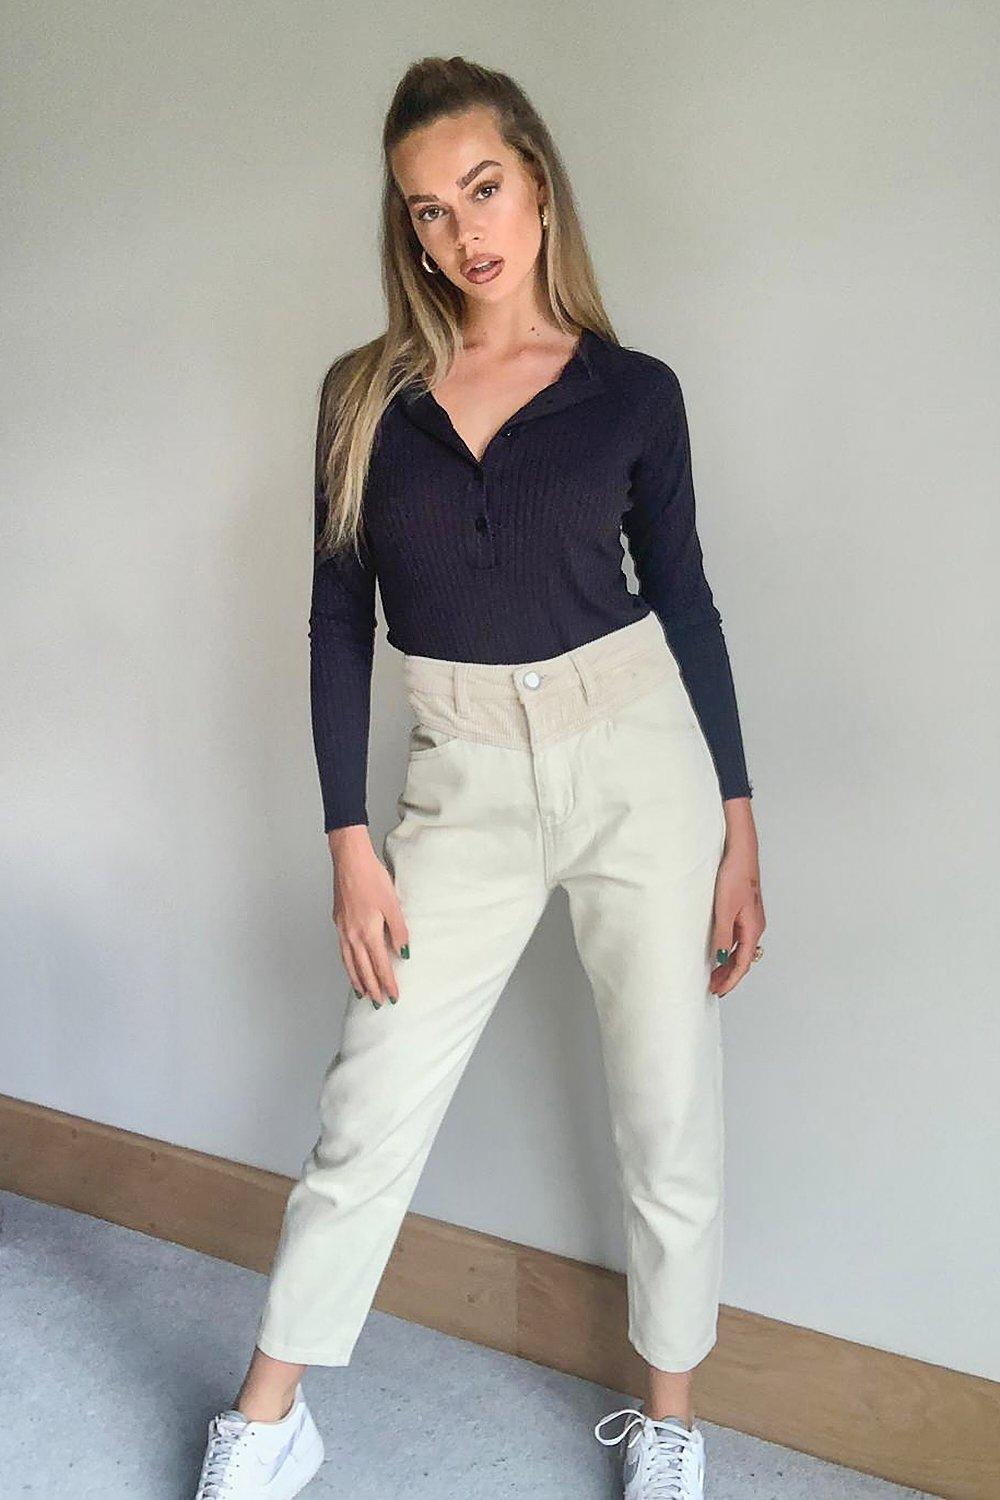 1980s Clothing, Fashion | 80s Style Clothes Womens High Rise Cord Constrast Mom Jean - Cream - 12 $20.00 AT vintagedancer.com